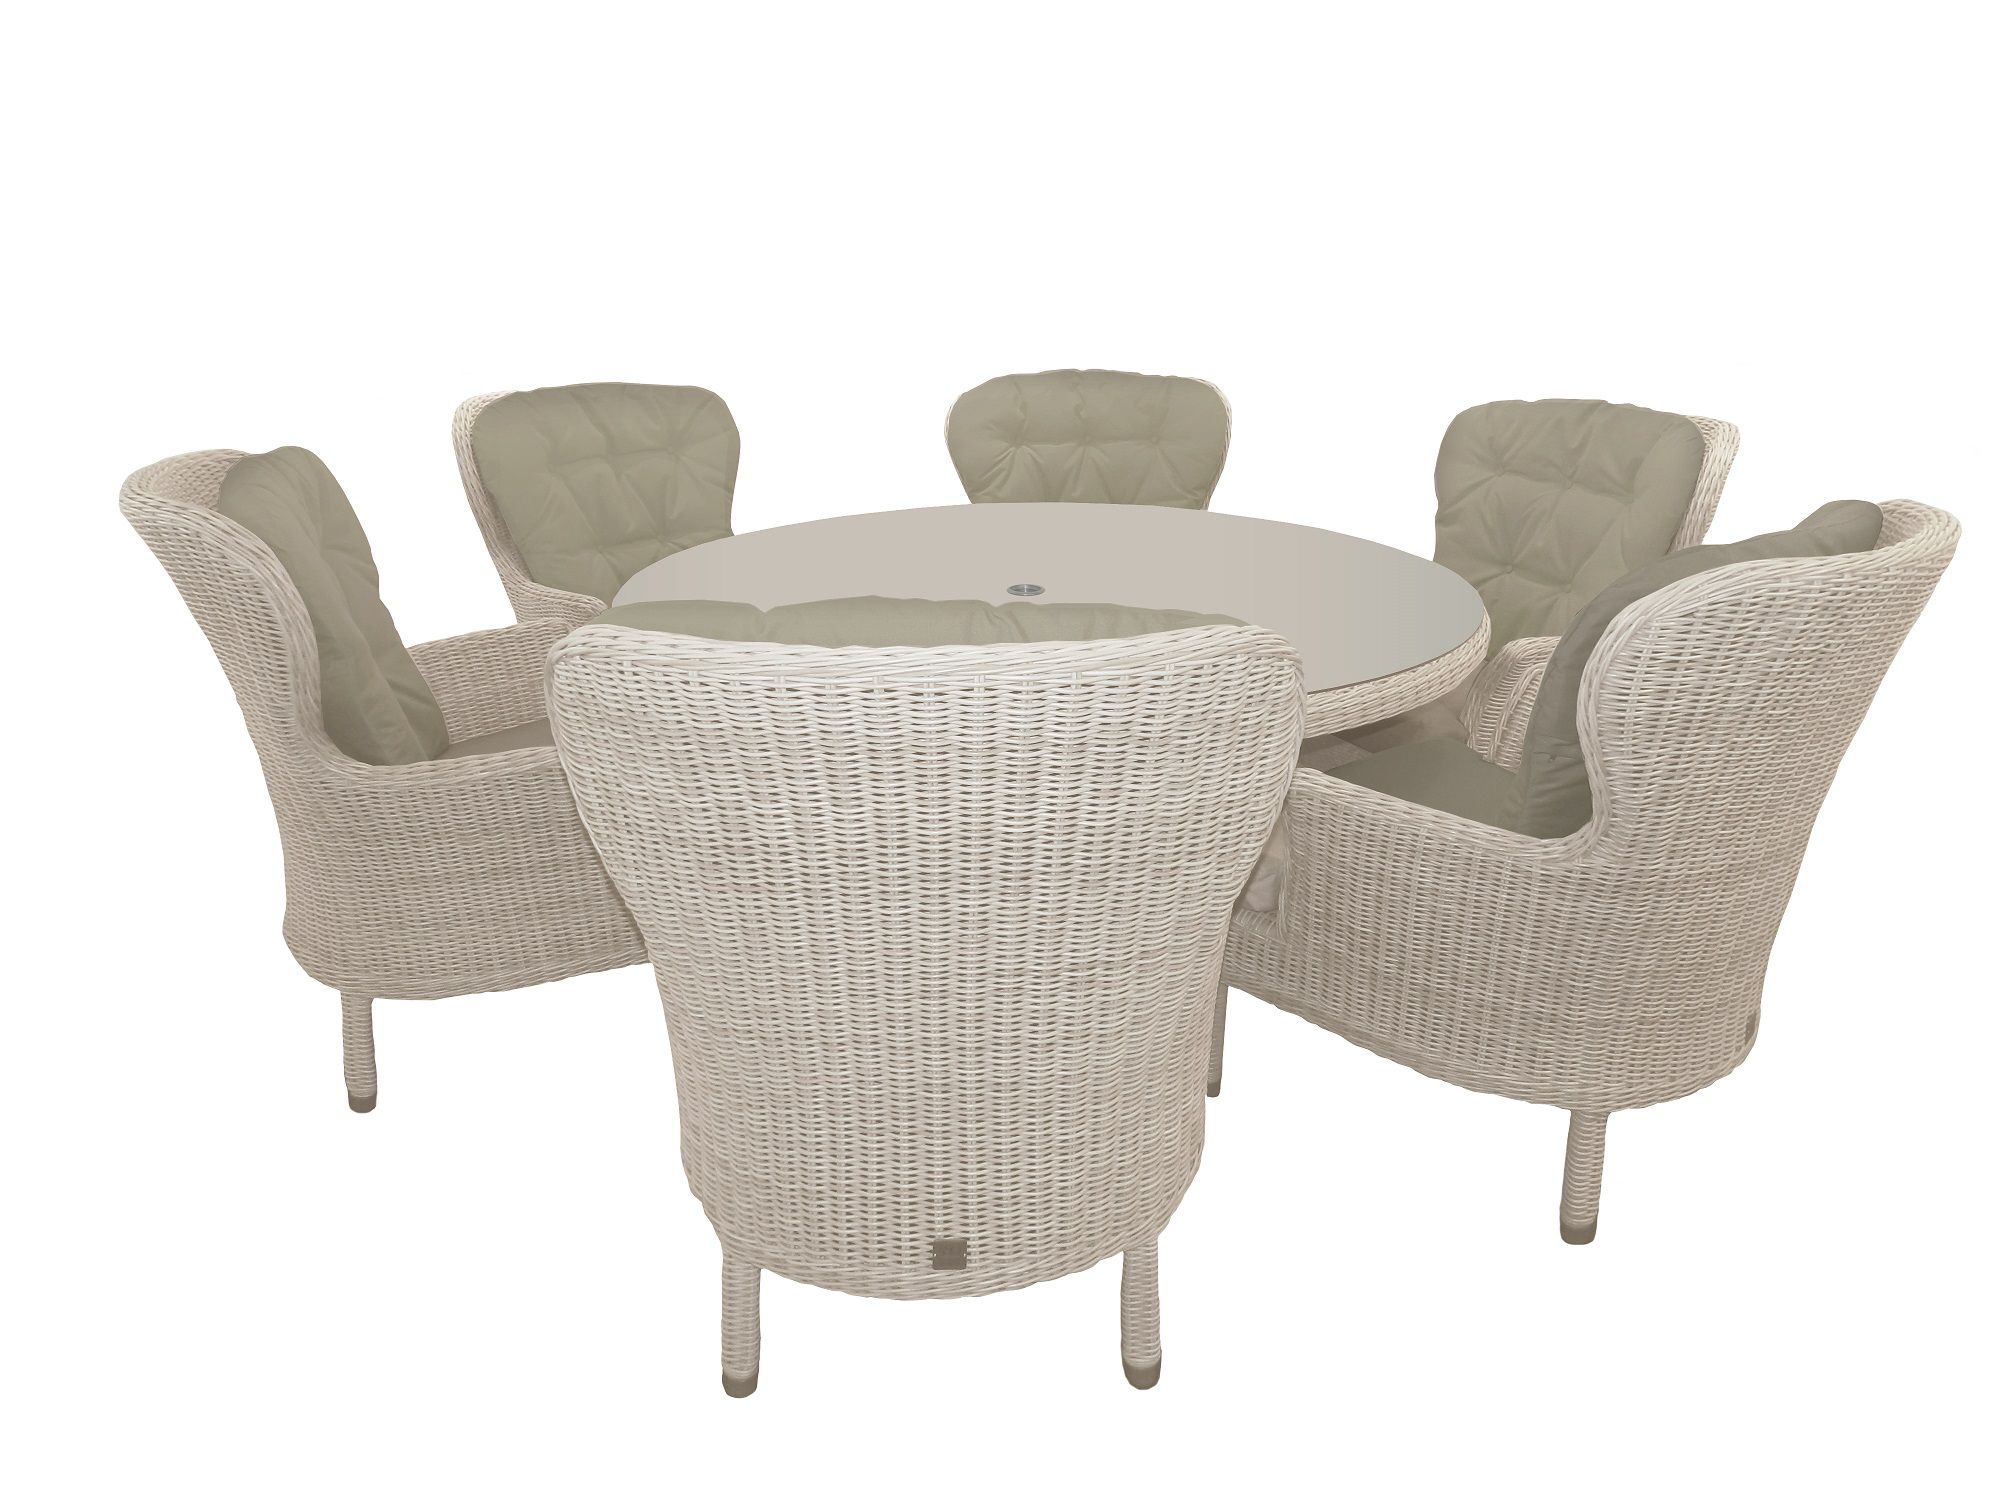 Image of 4 Seasons Outdoor Buckingham 6 Seater Dining Set